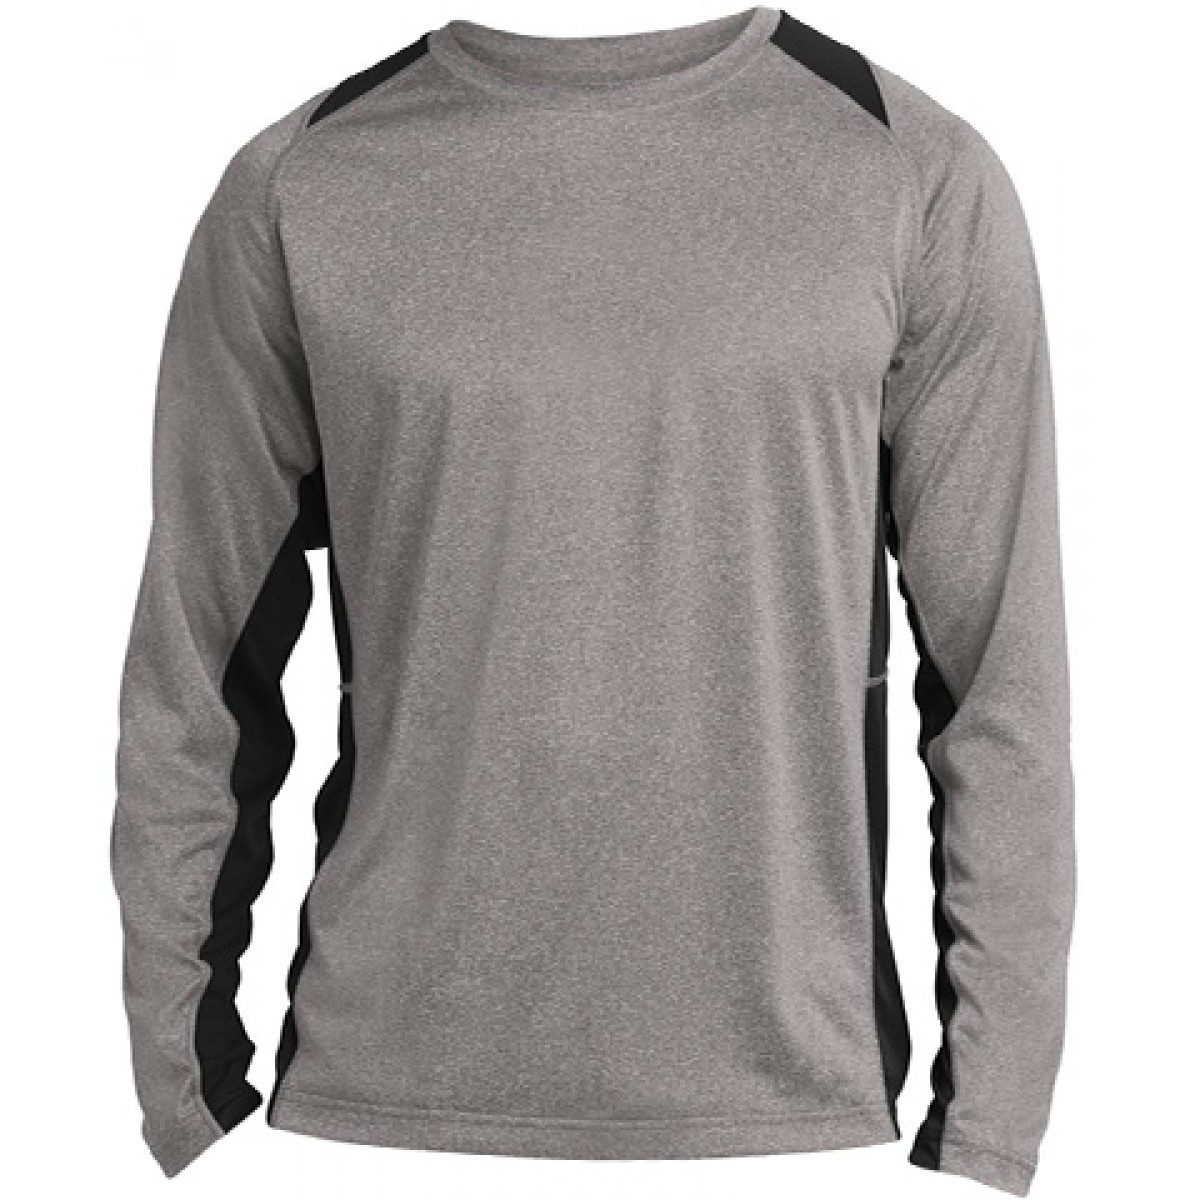 Long Sleeve Heather Colorblock Contender-Gray/Black-L